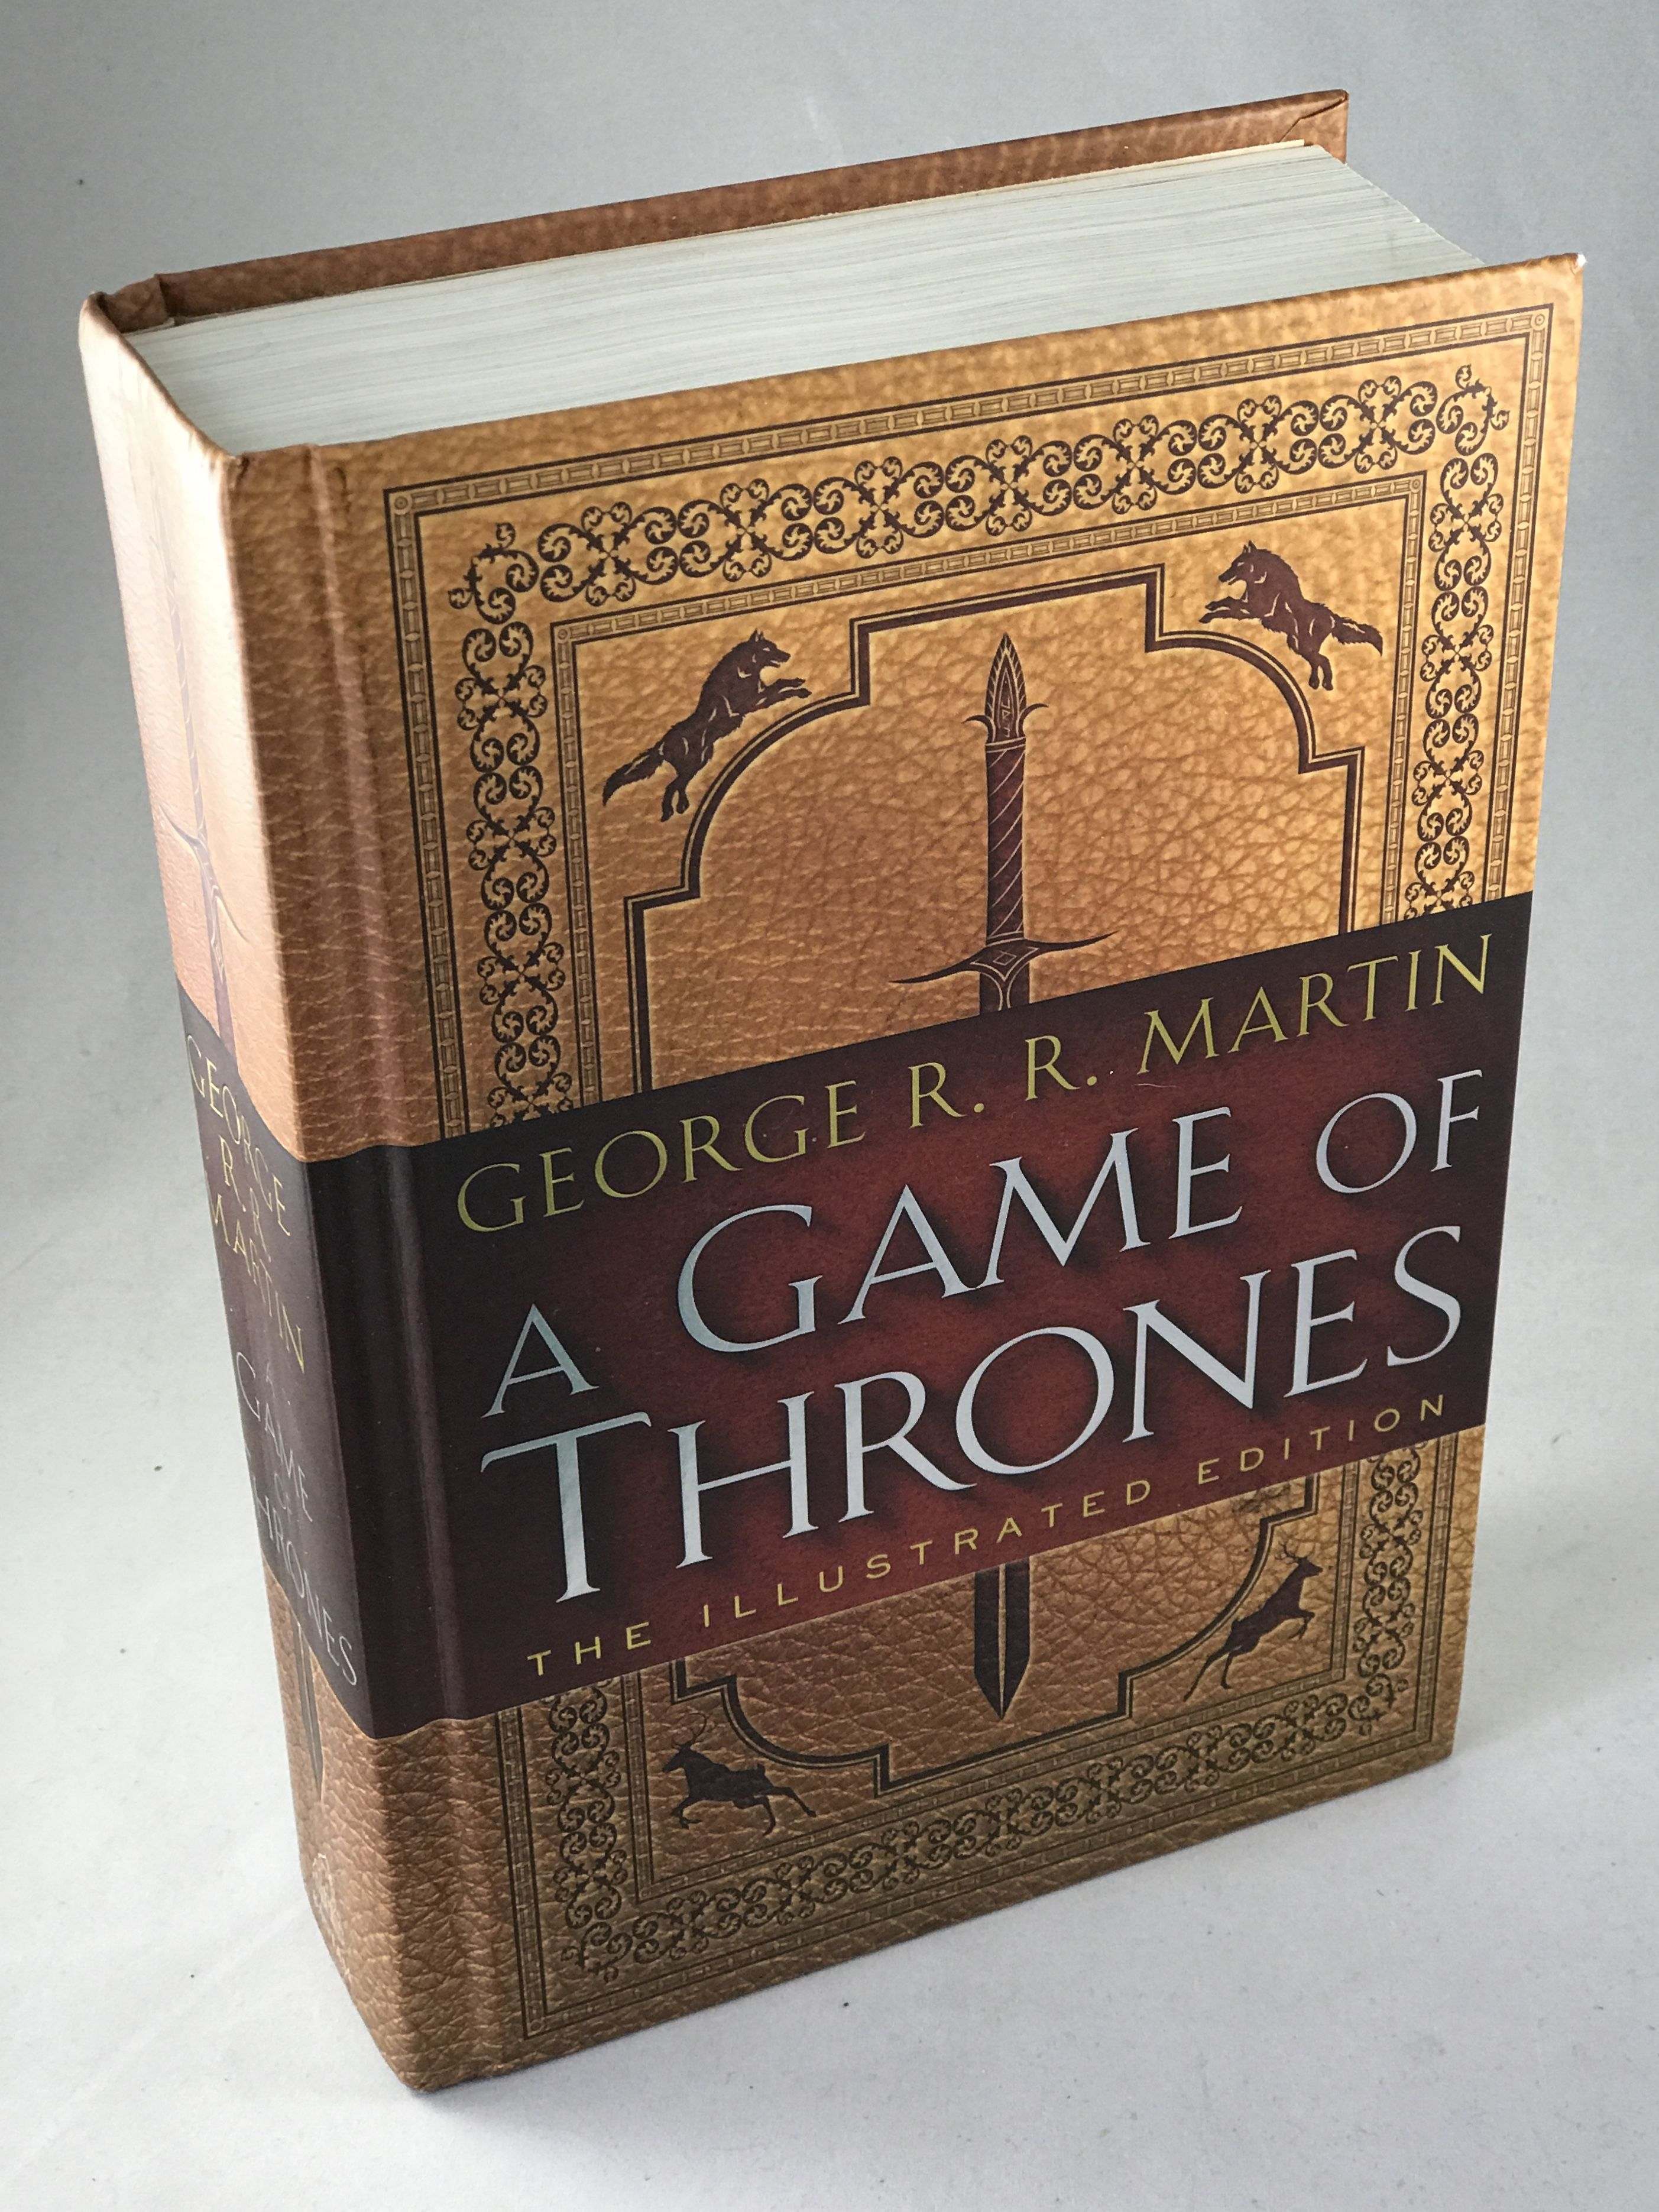 9780553808049 A Game Of Thrones The Illustrated Edition A Song Of Ice And Fire Book One By George R R Martin